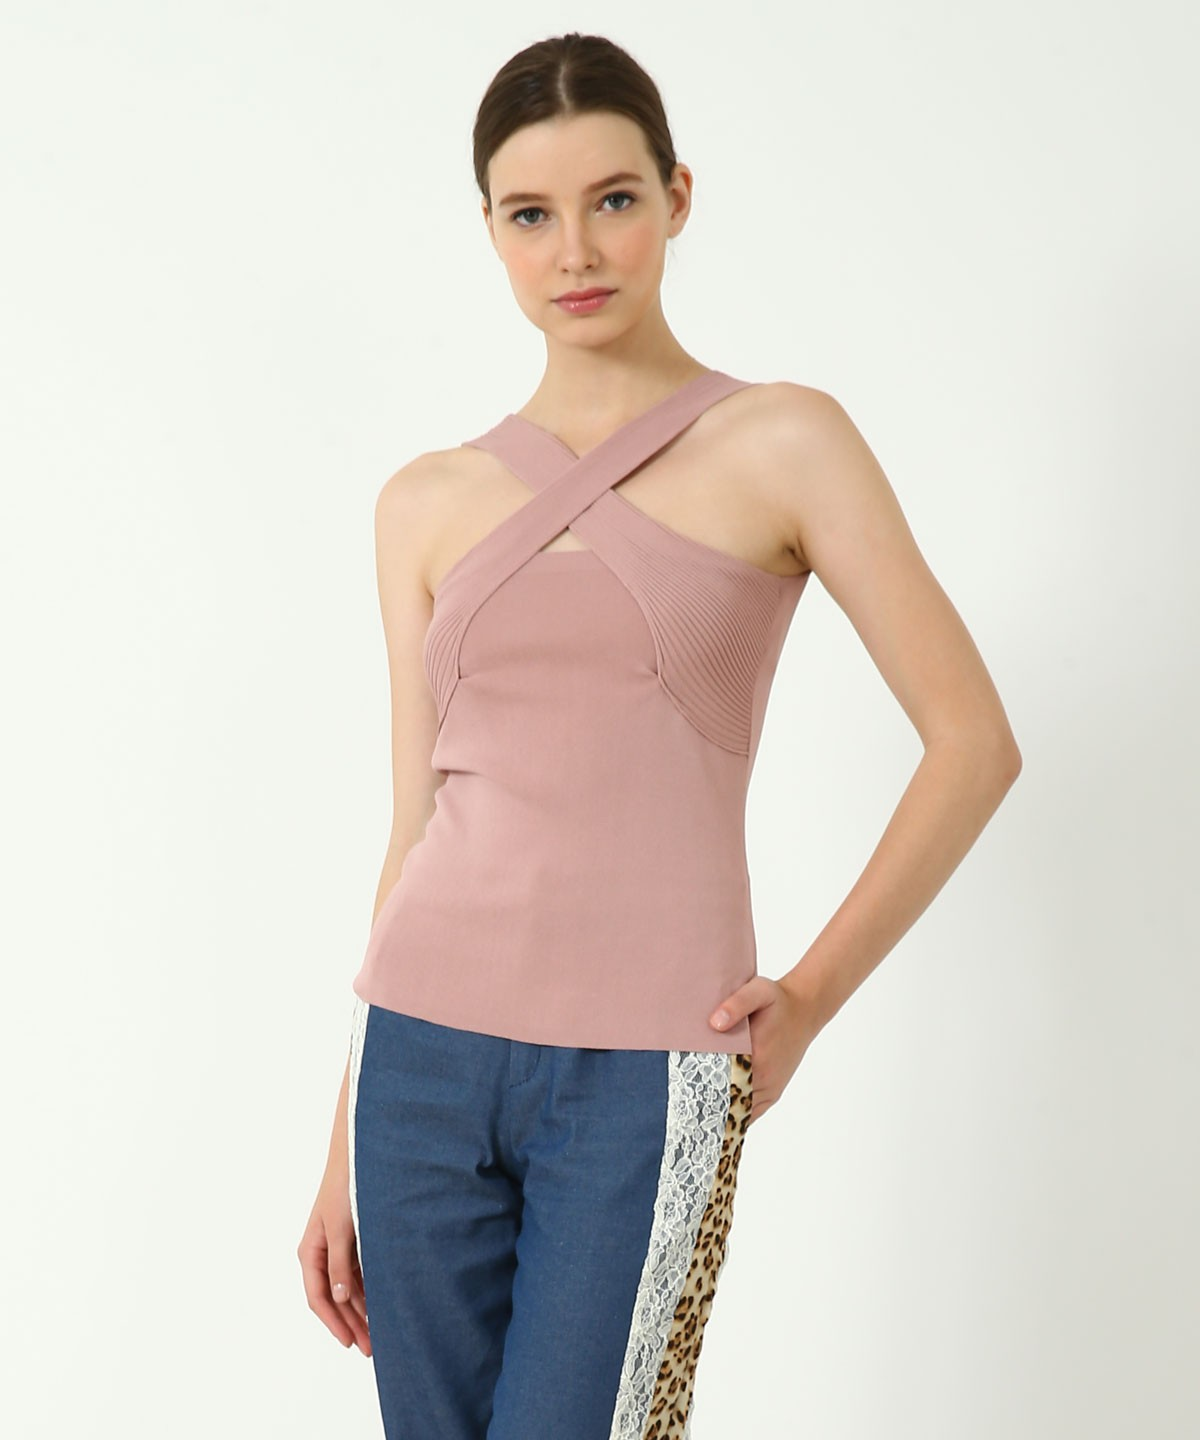 Chelsea Knitted Sleeveless Top